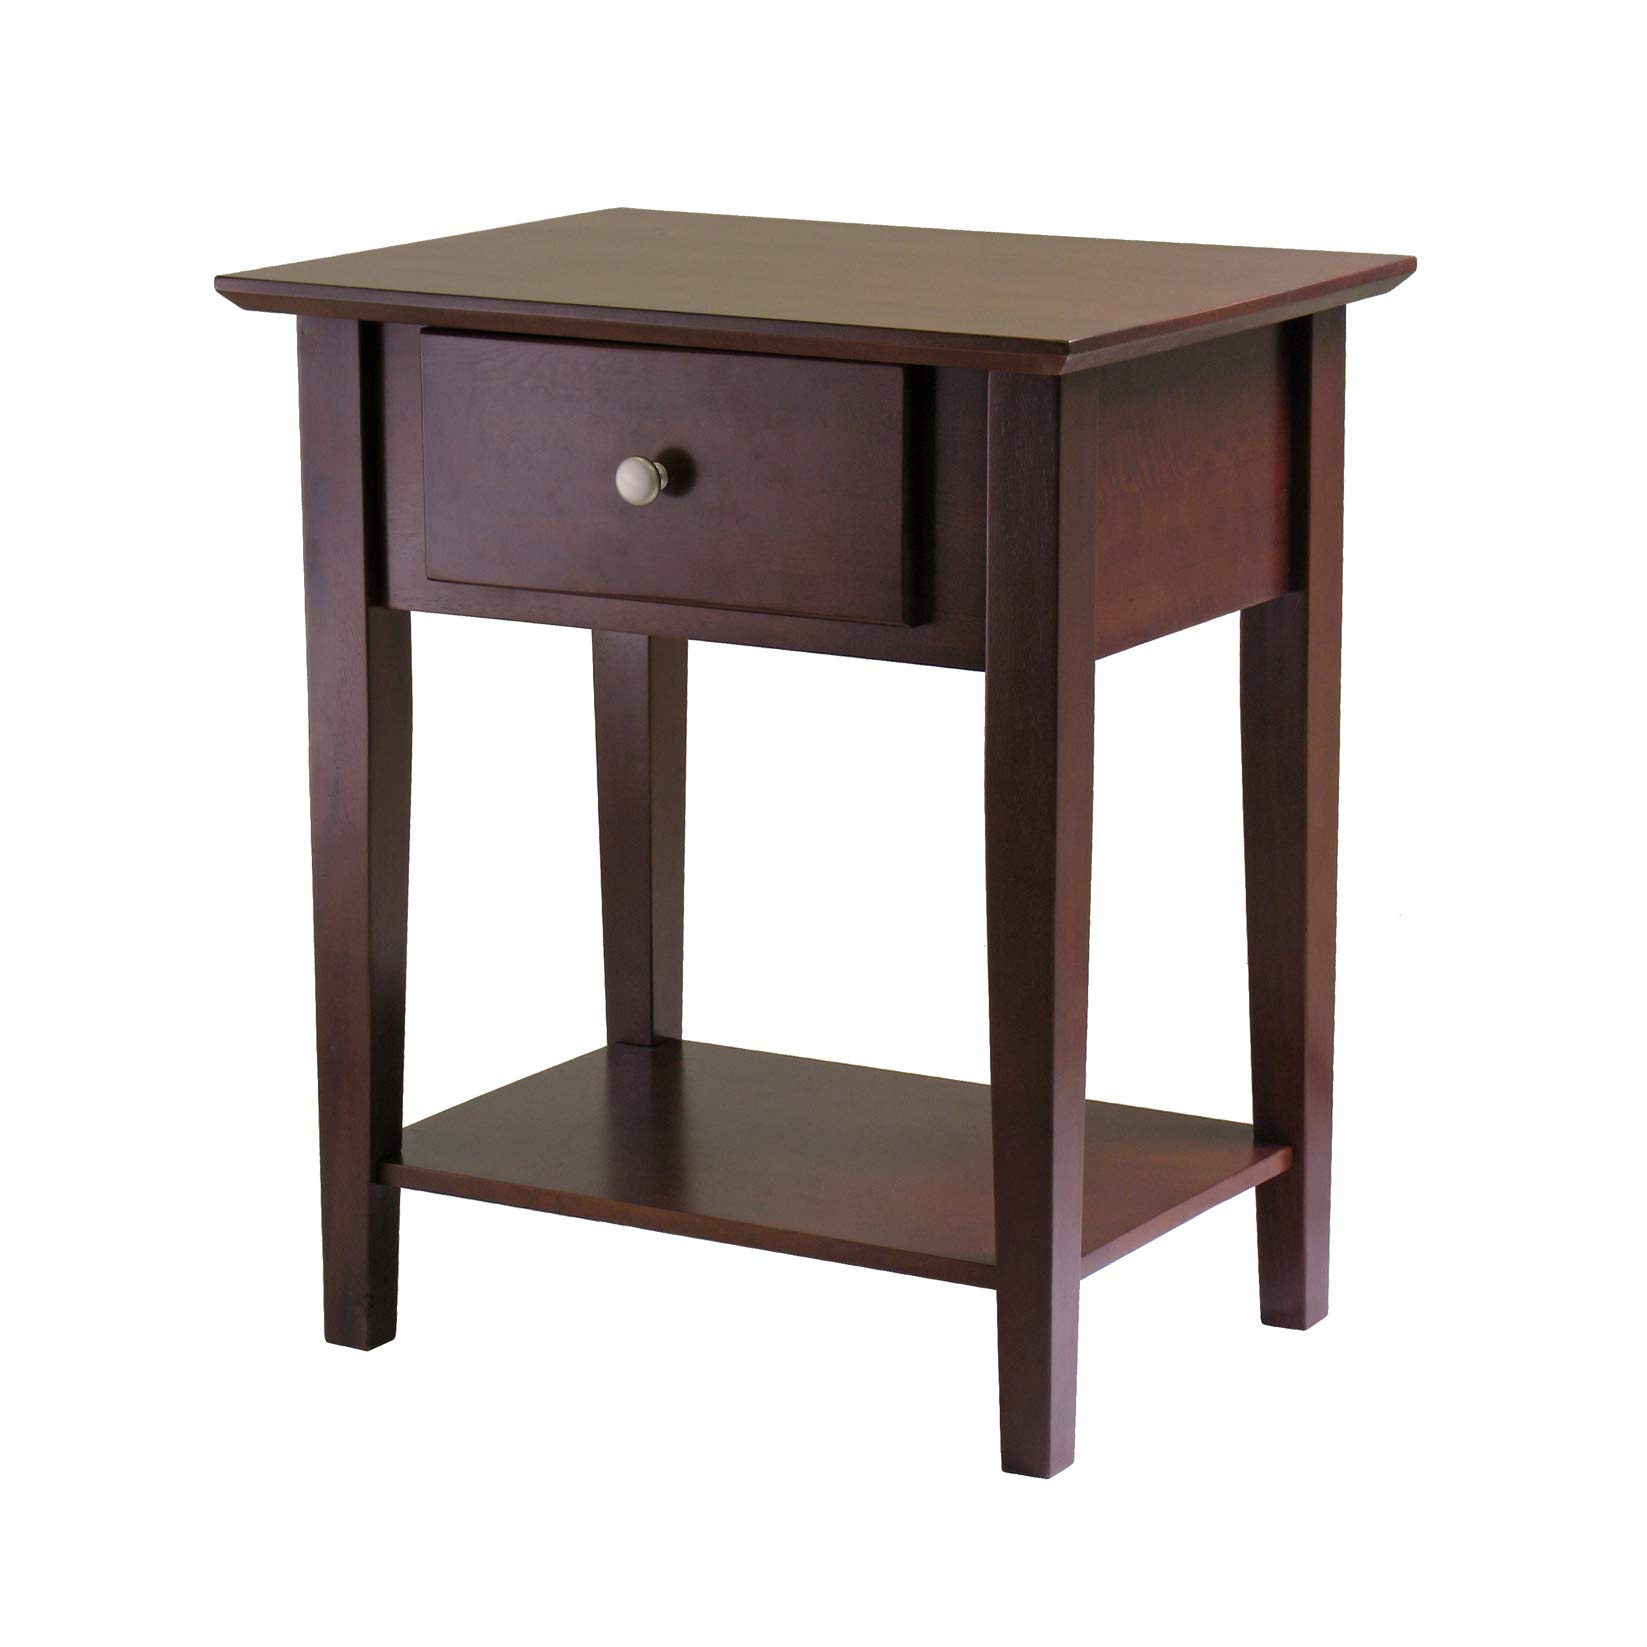 Winsome Wood 94922 Shaker Accent Table, Antique Walnut by Winsome Wood